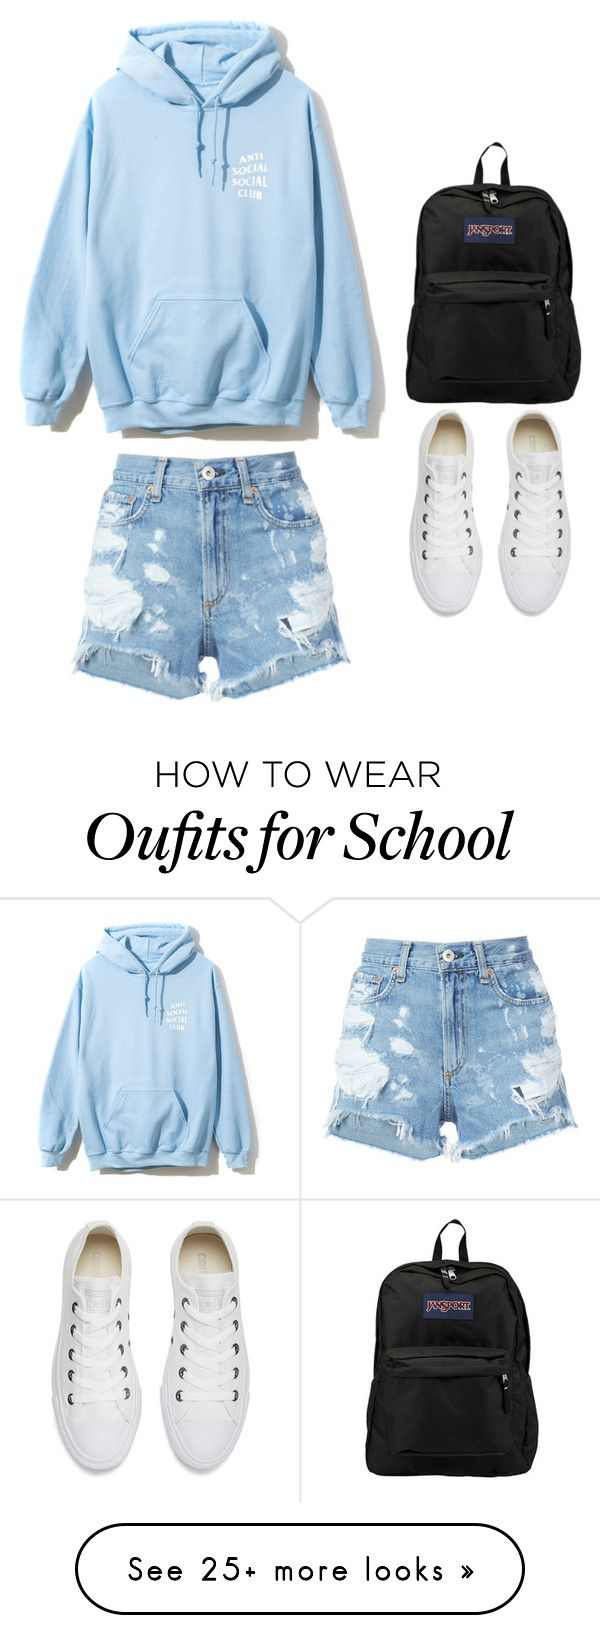 """Lazy day at school"" by keviprajna on Polyvore featuring rag & bone/JEAN, Converse and JanSport"